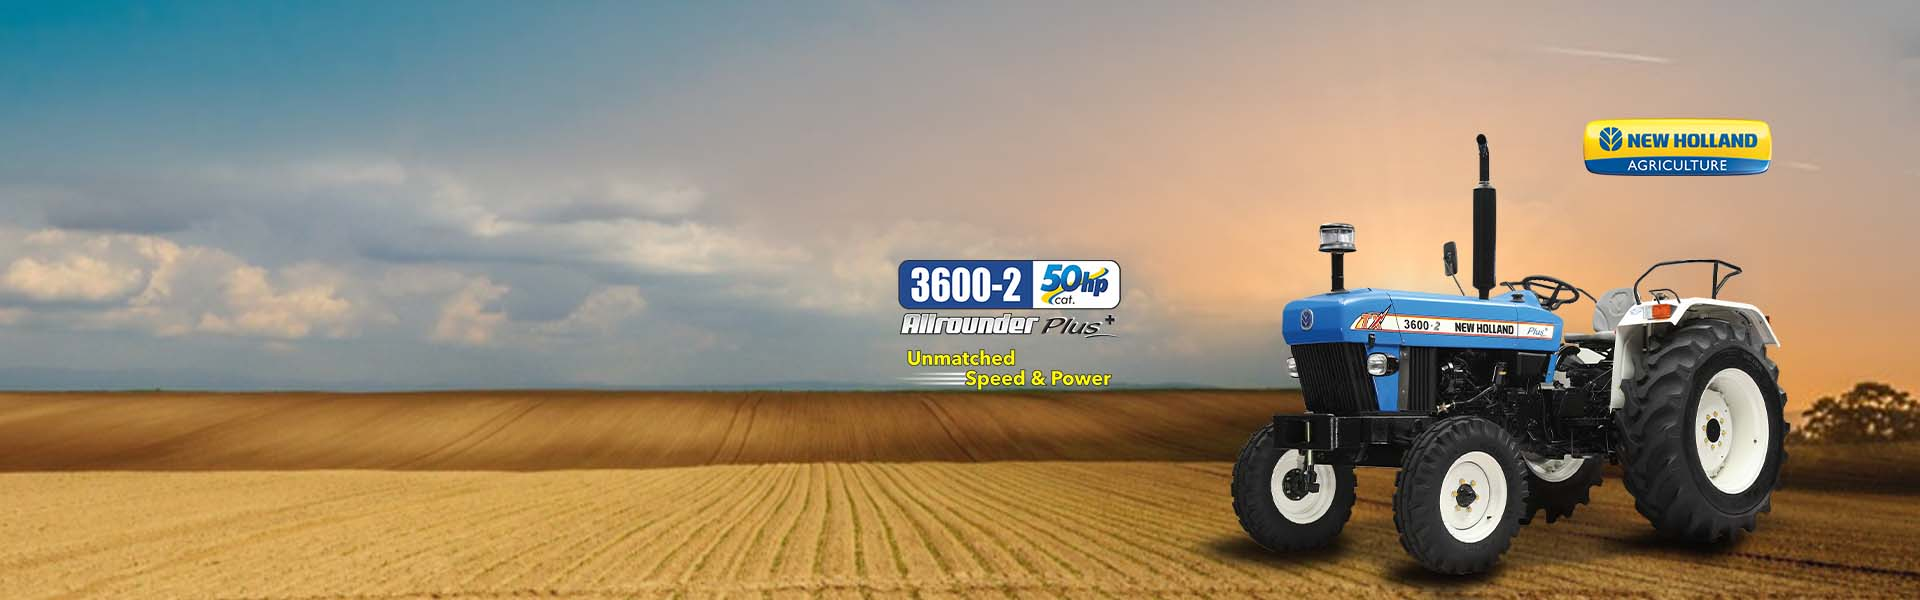 New Holland Tractors | Tractorjunction